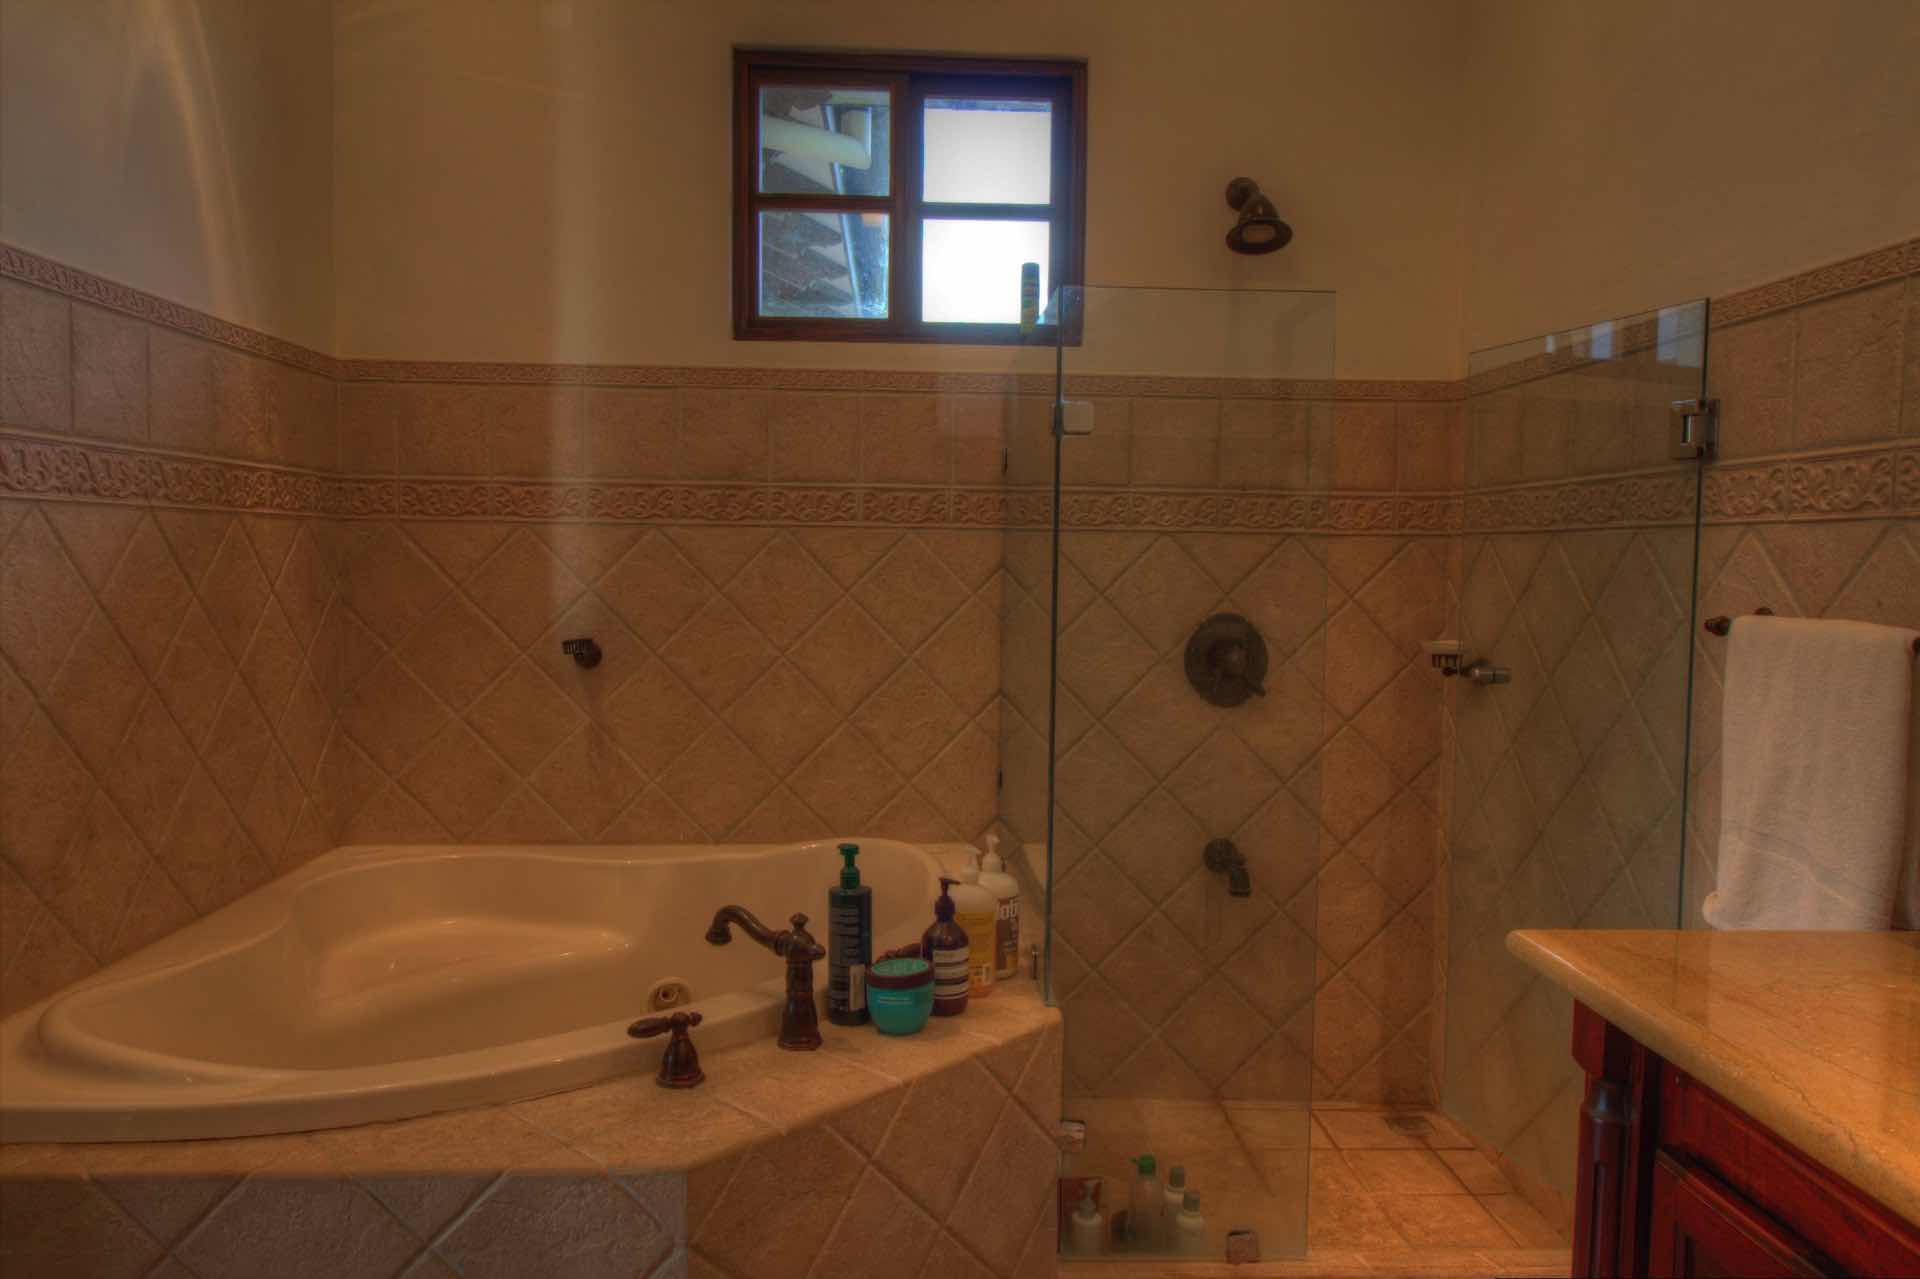 Tub and shower, we got you covered!